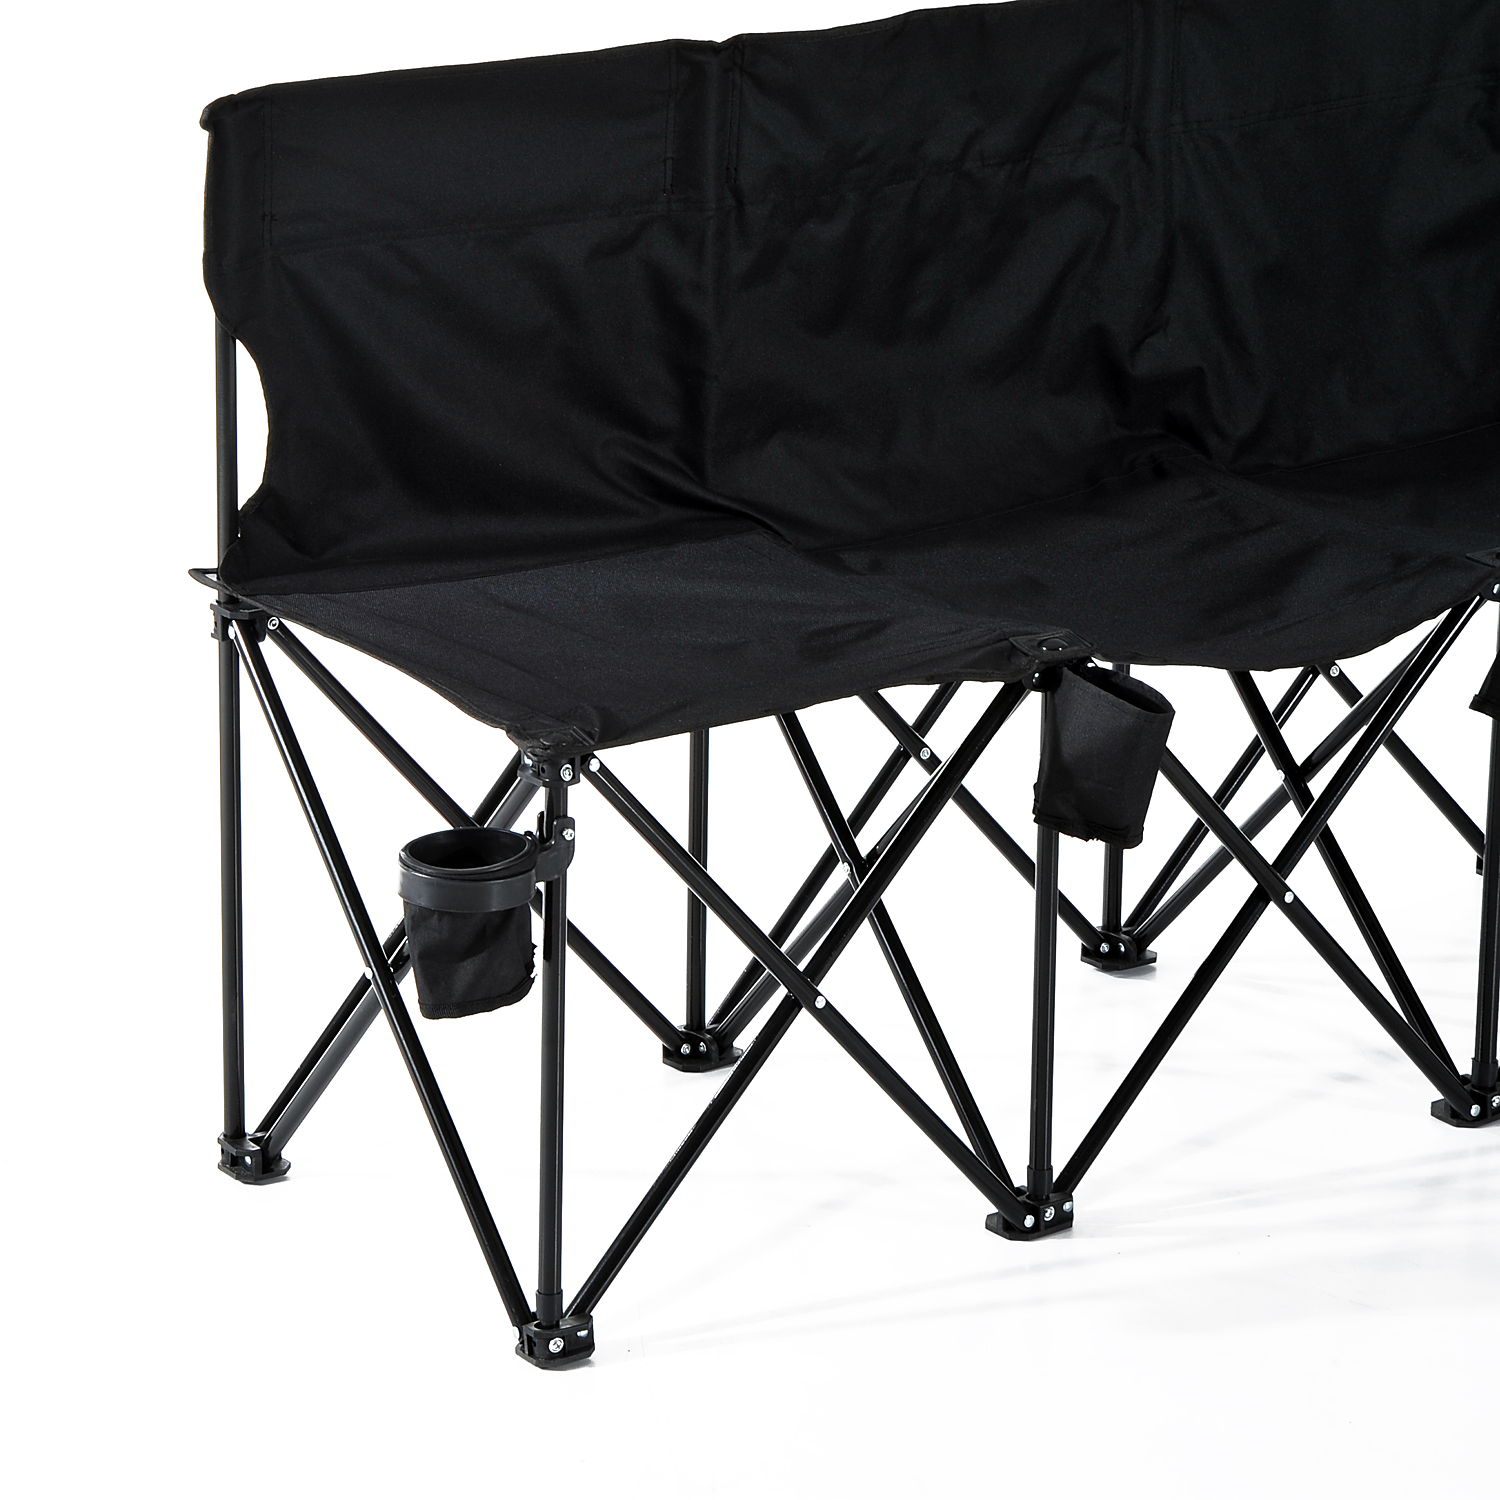 Portable 6 Seats Folding Bench Chair Outdoor Camping